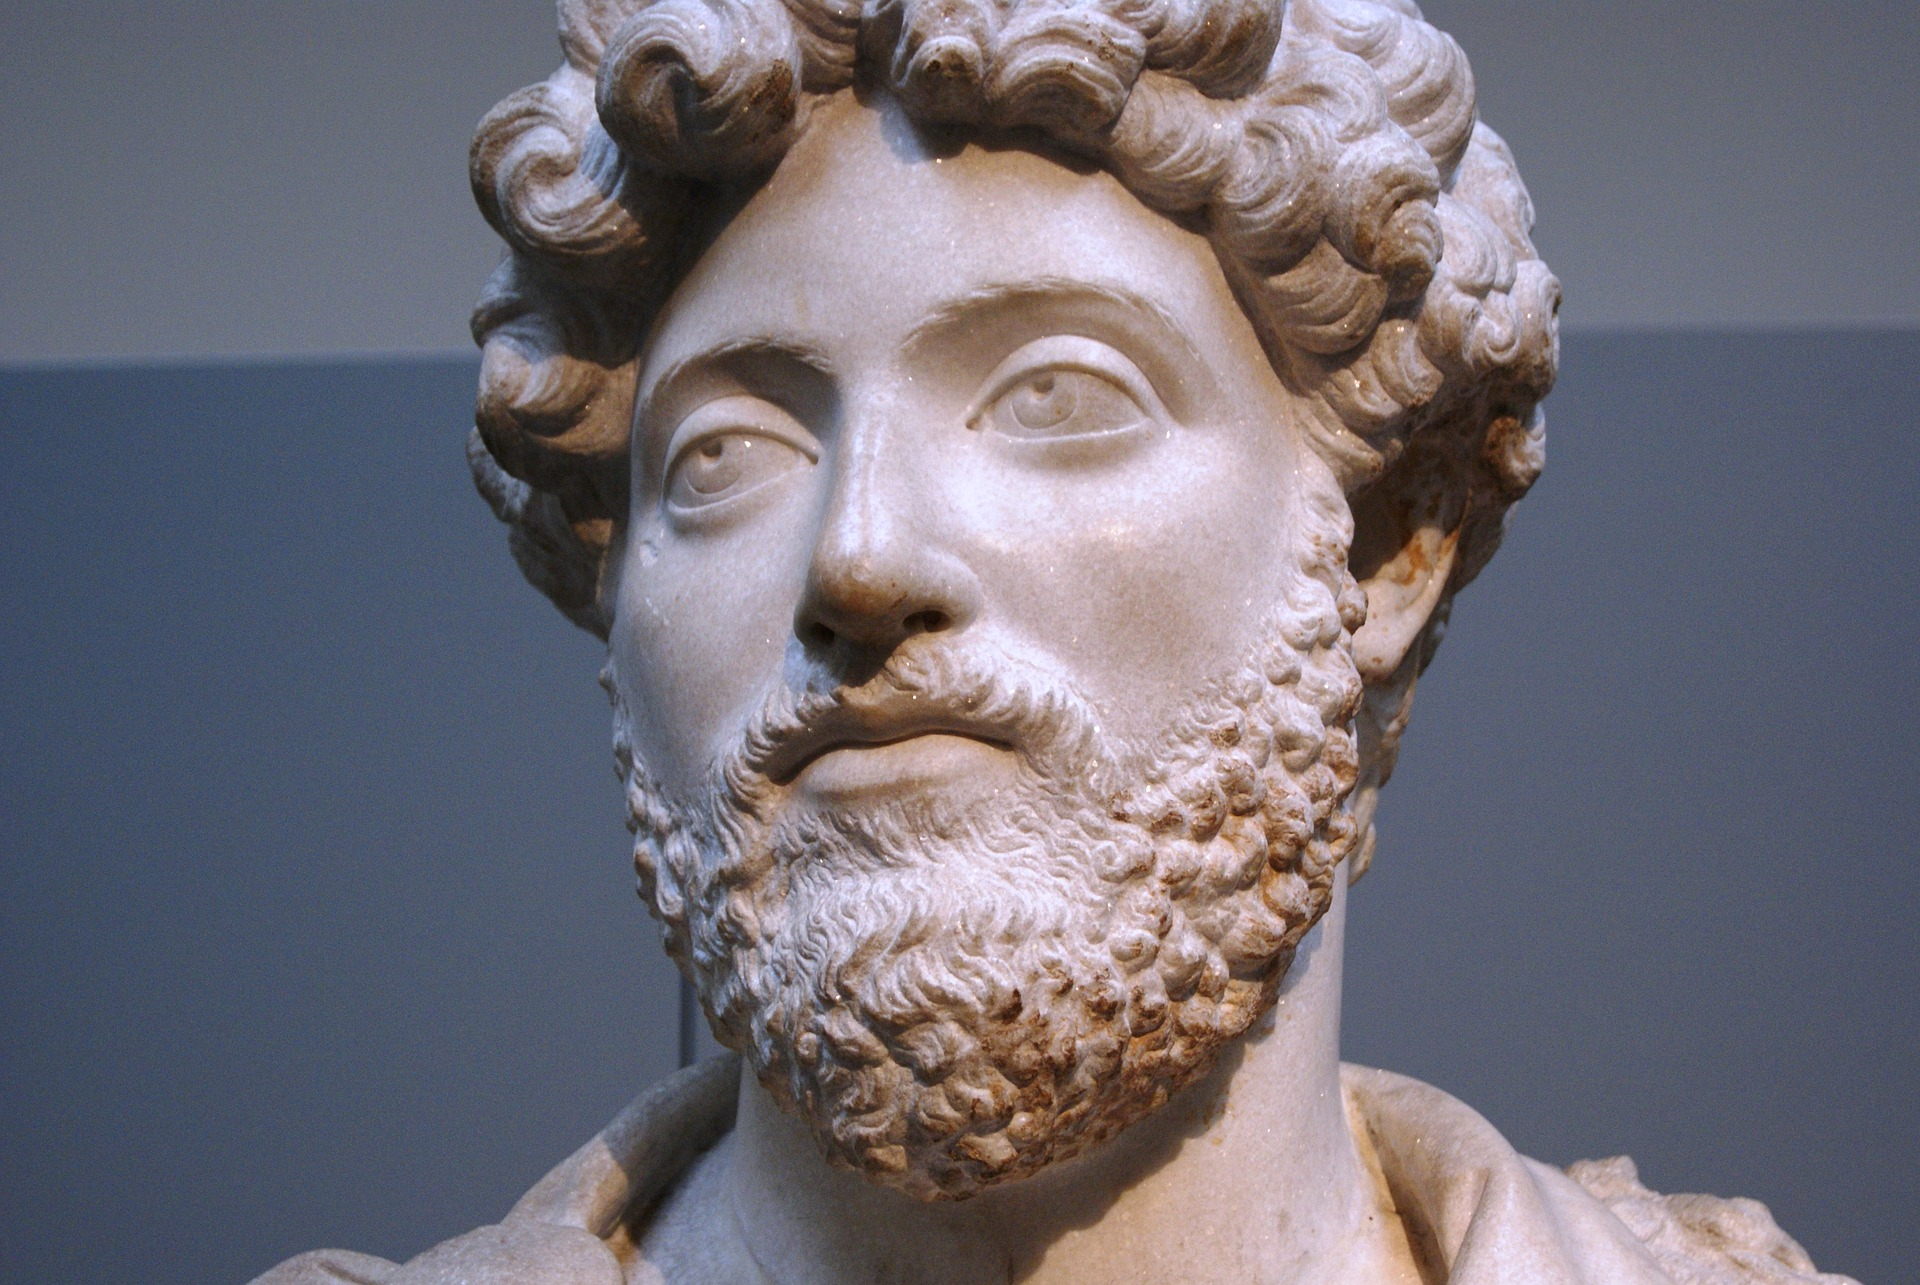 Thoughts on The Meditations of Marcus Aurelius